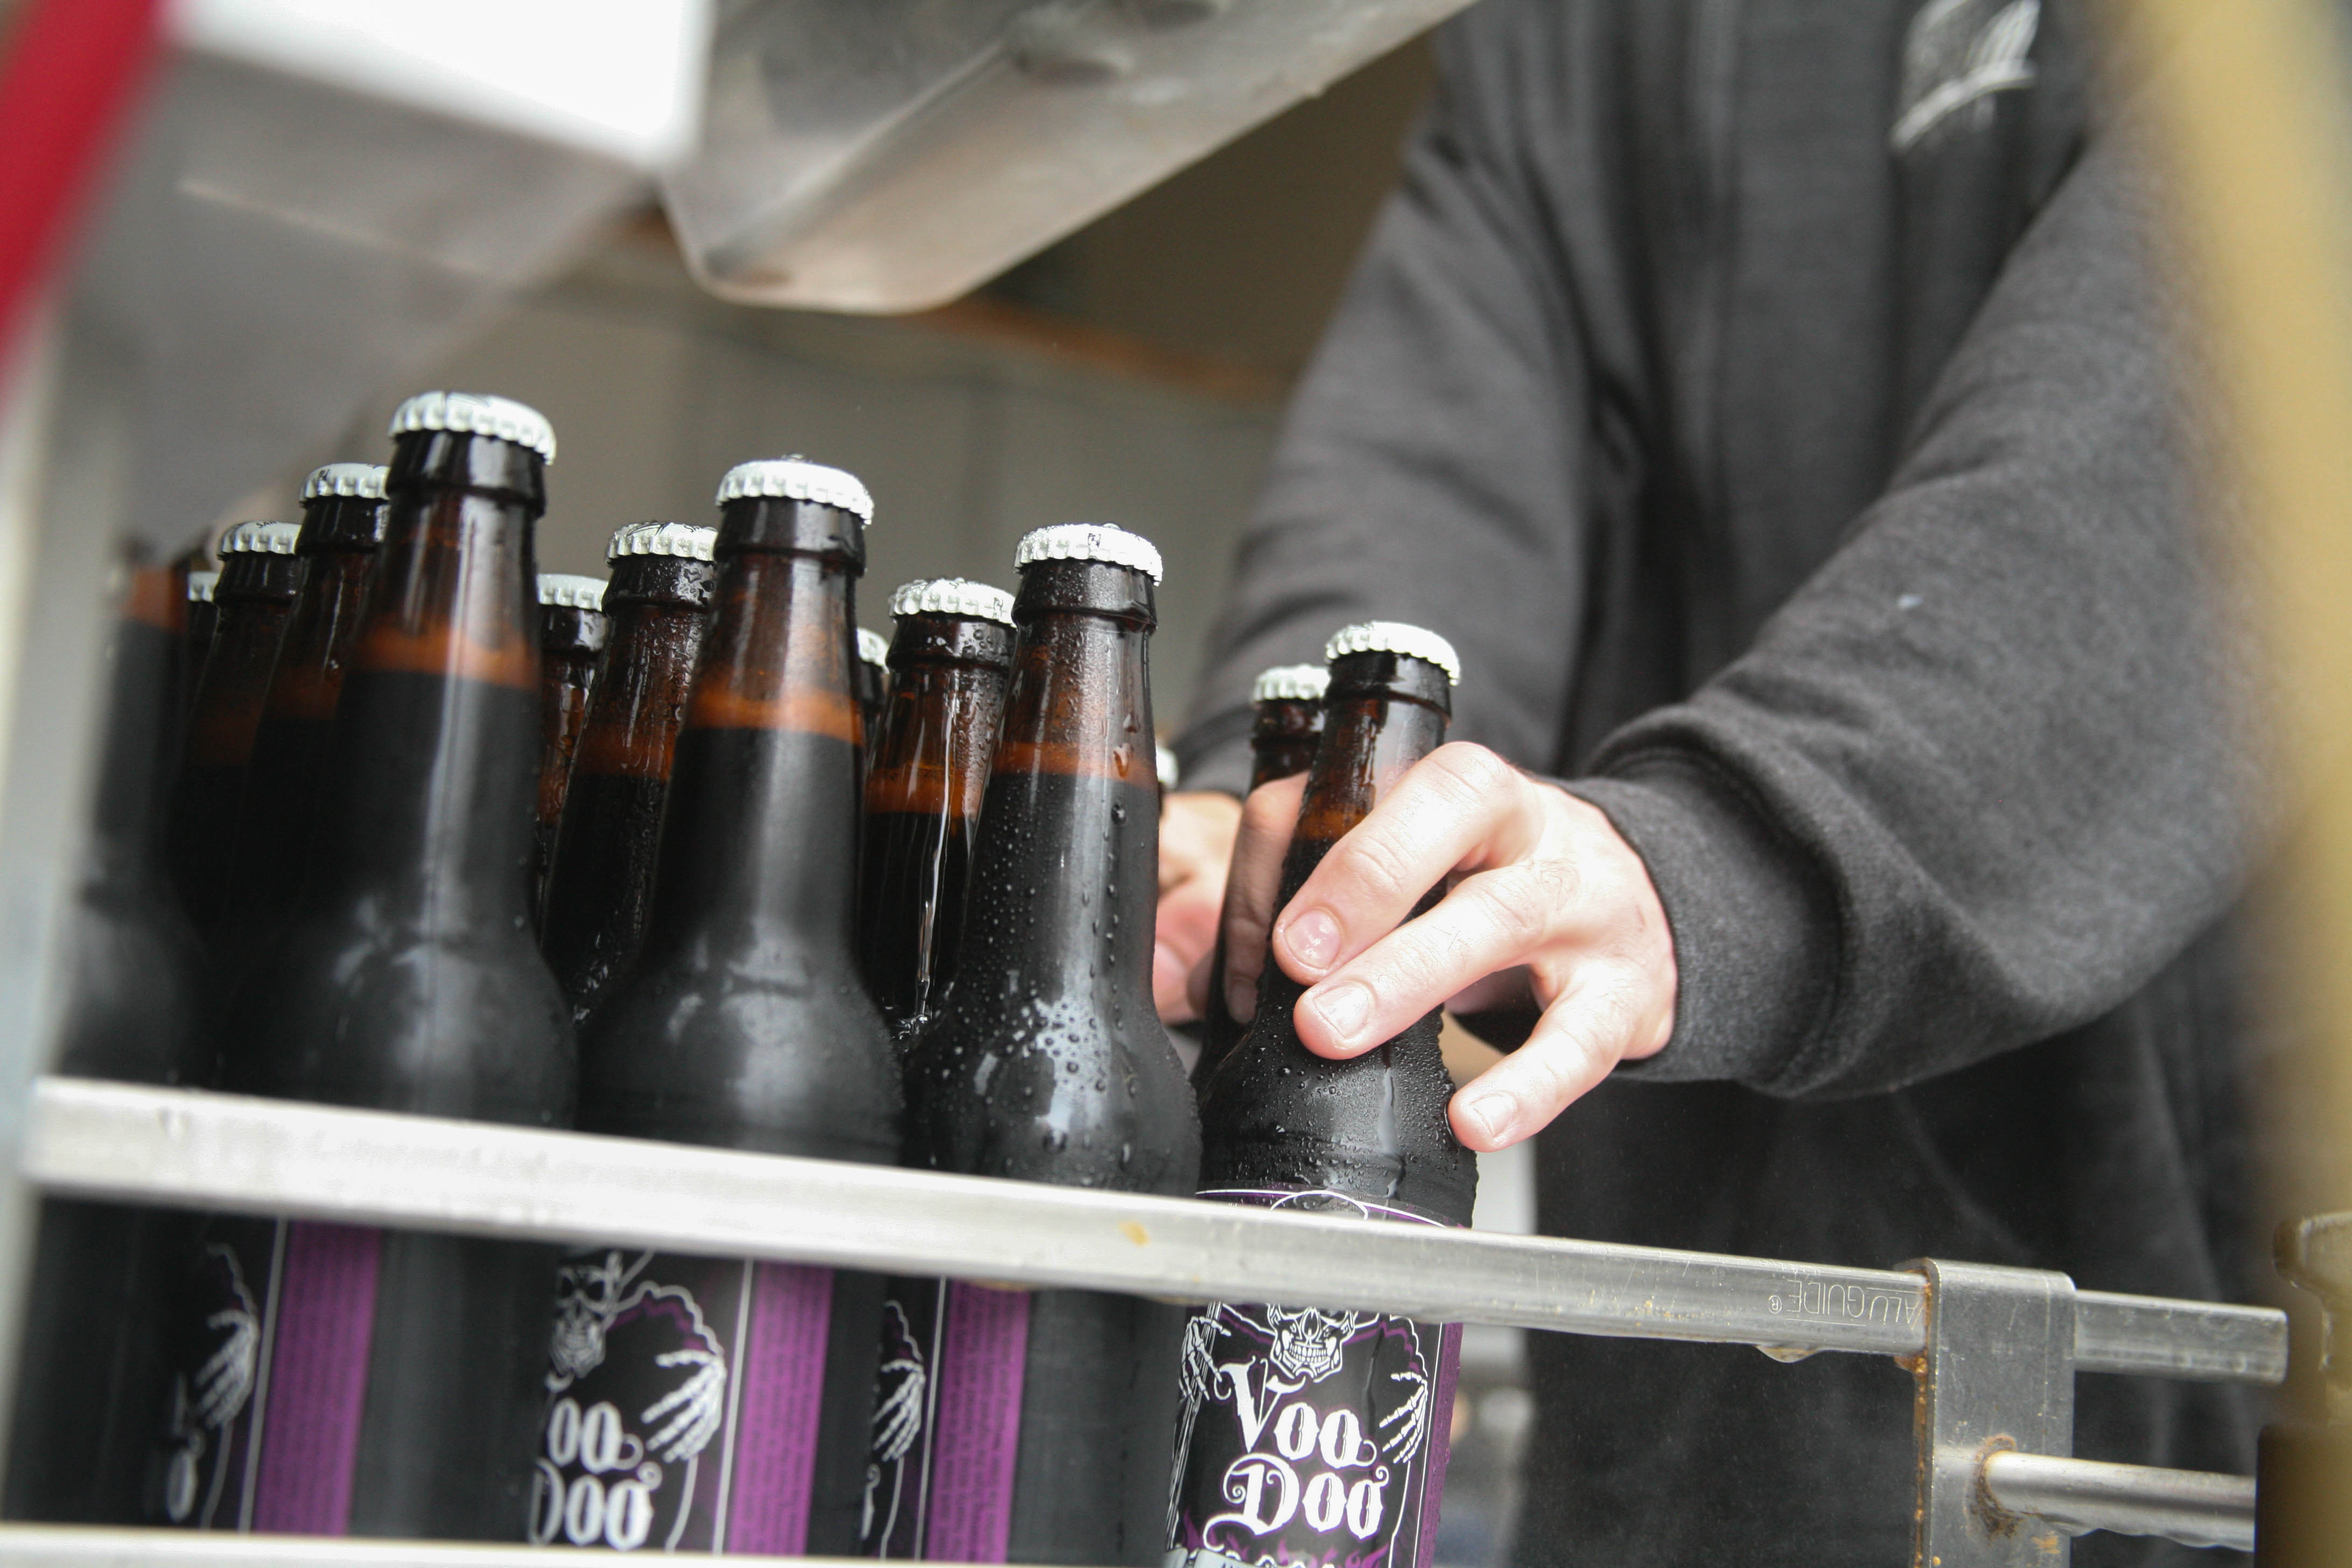 Left Coast Brewing Company's Voo Doo Stout is bottled and packaged by hand at their brewing facility and tap room in San Clemente.